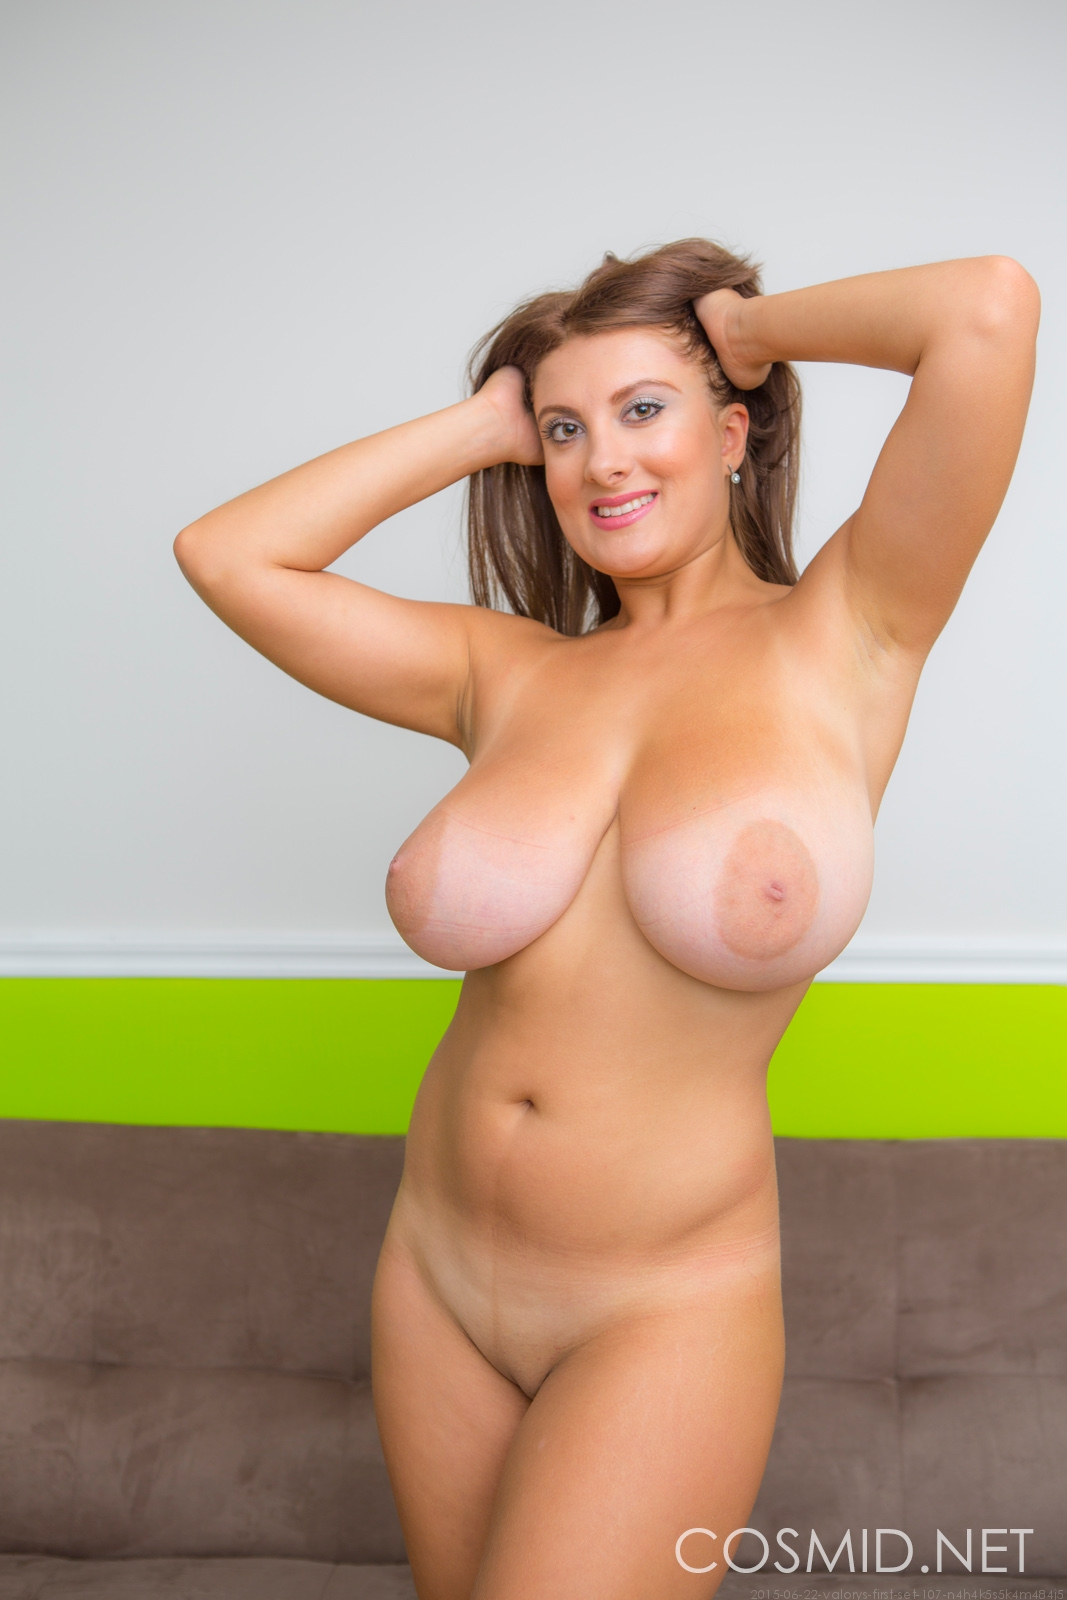 Huge massive natural boobs bounce in slow motion 2